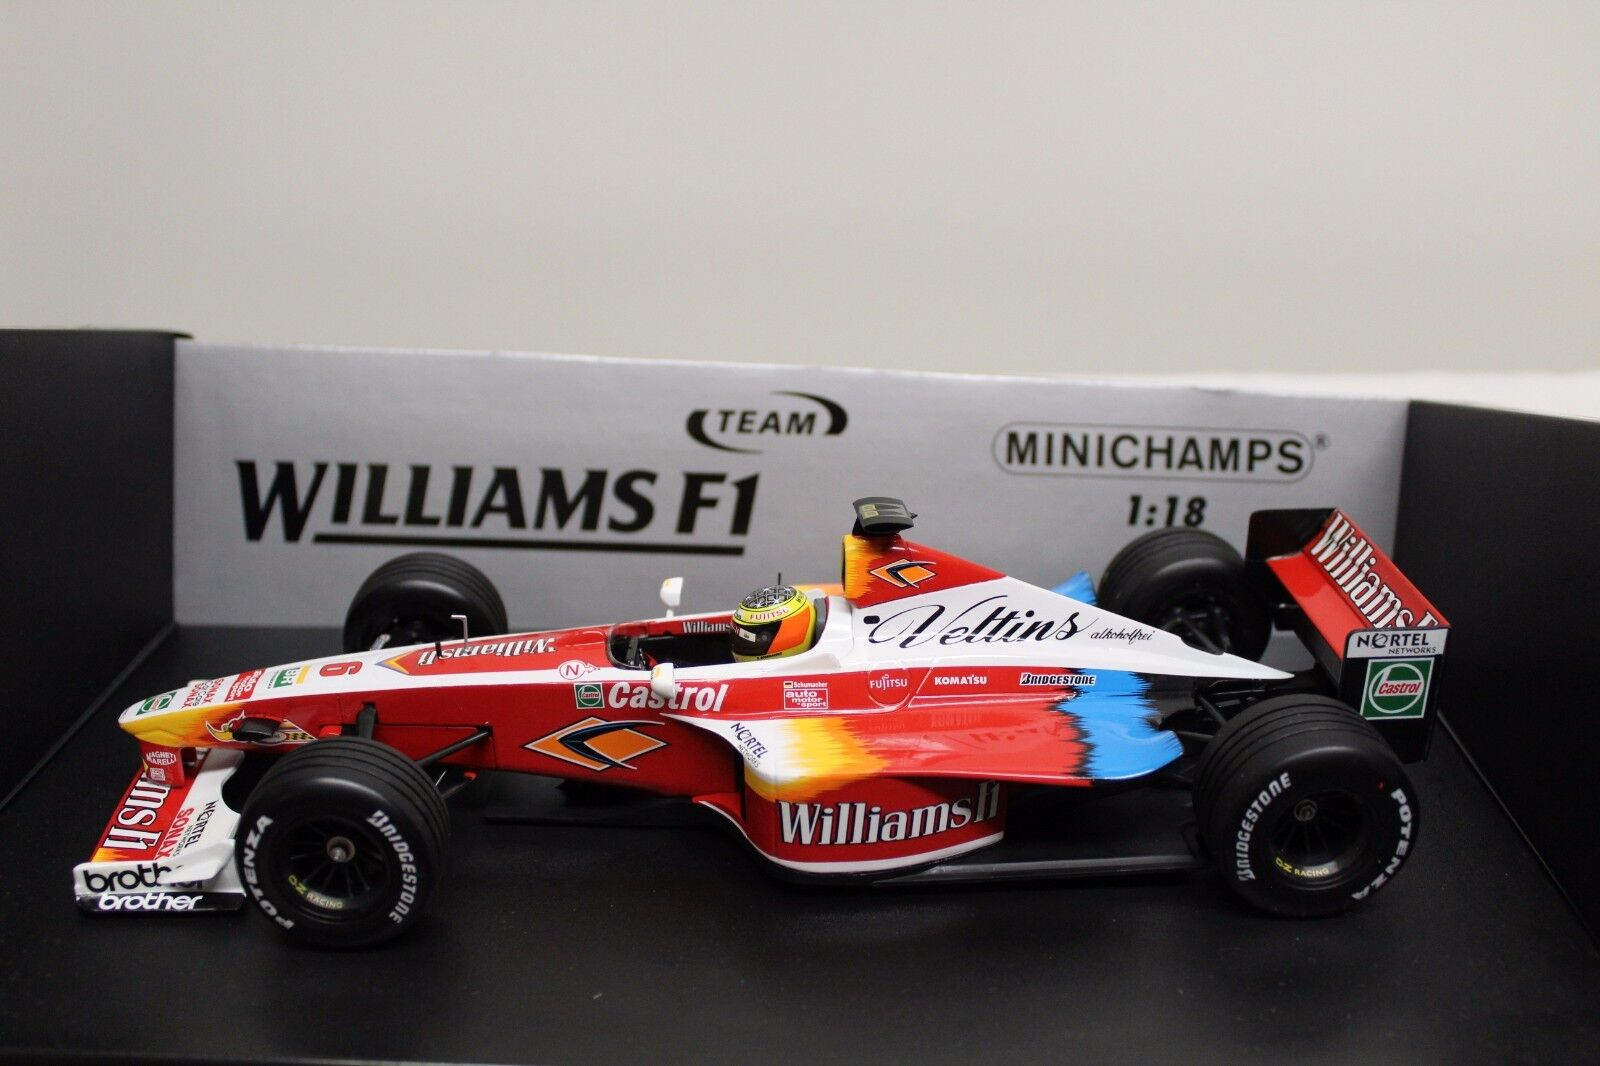 MINICHAMPS 1 18 Formule 1 Williams f1 1999 SUPERTEC fw21 Schumacher FW 21 Nouveau